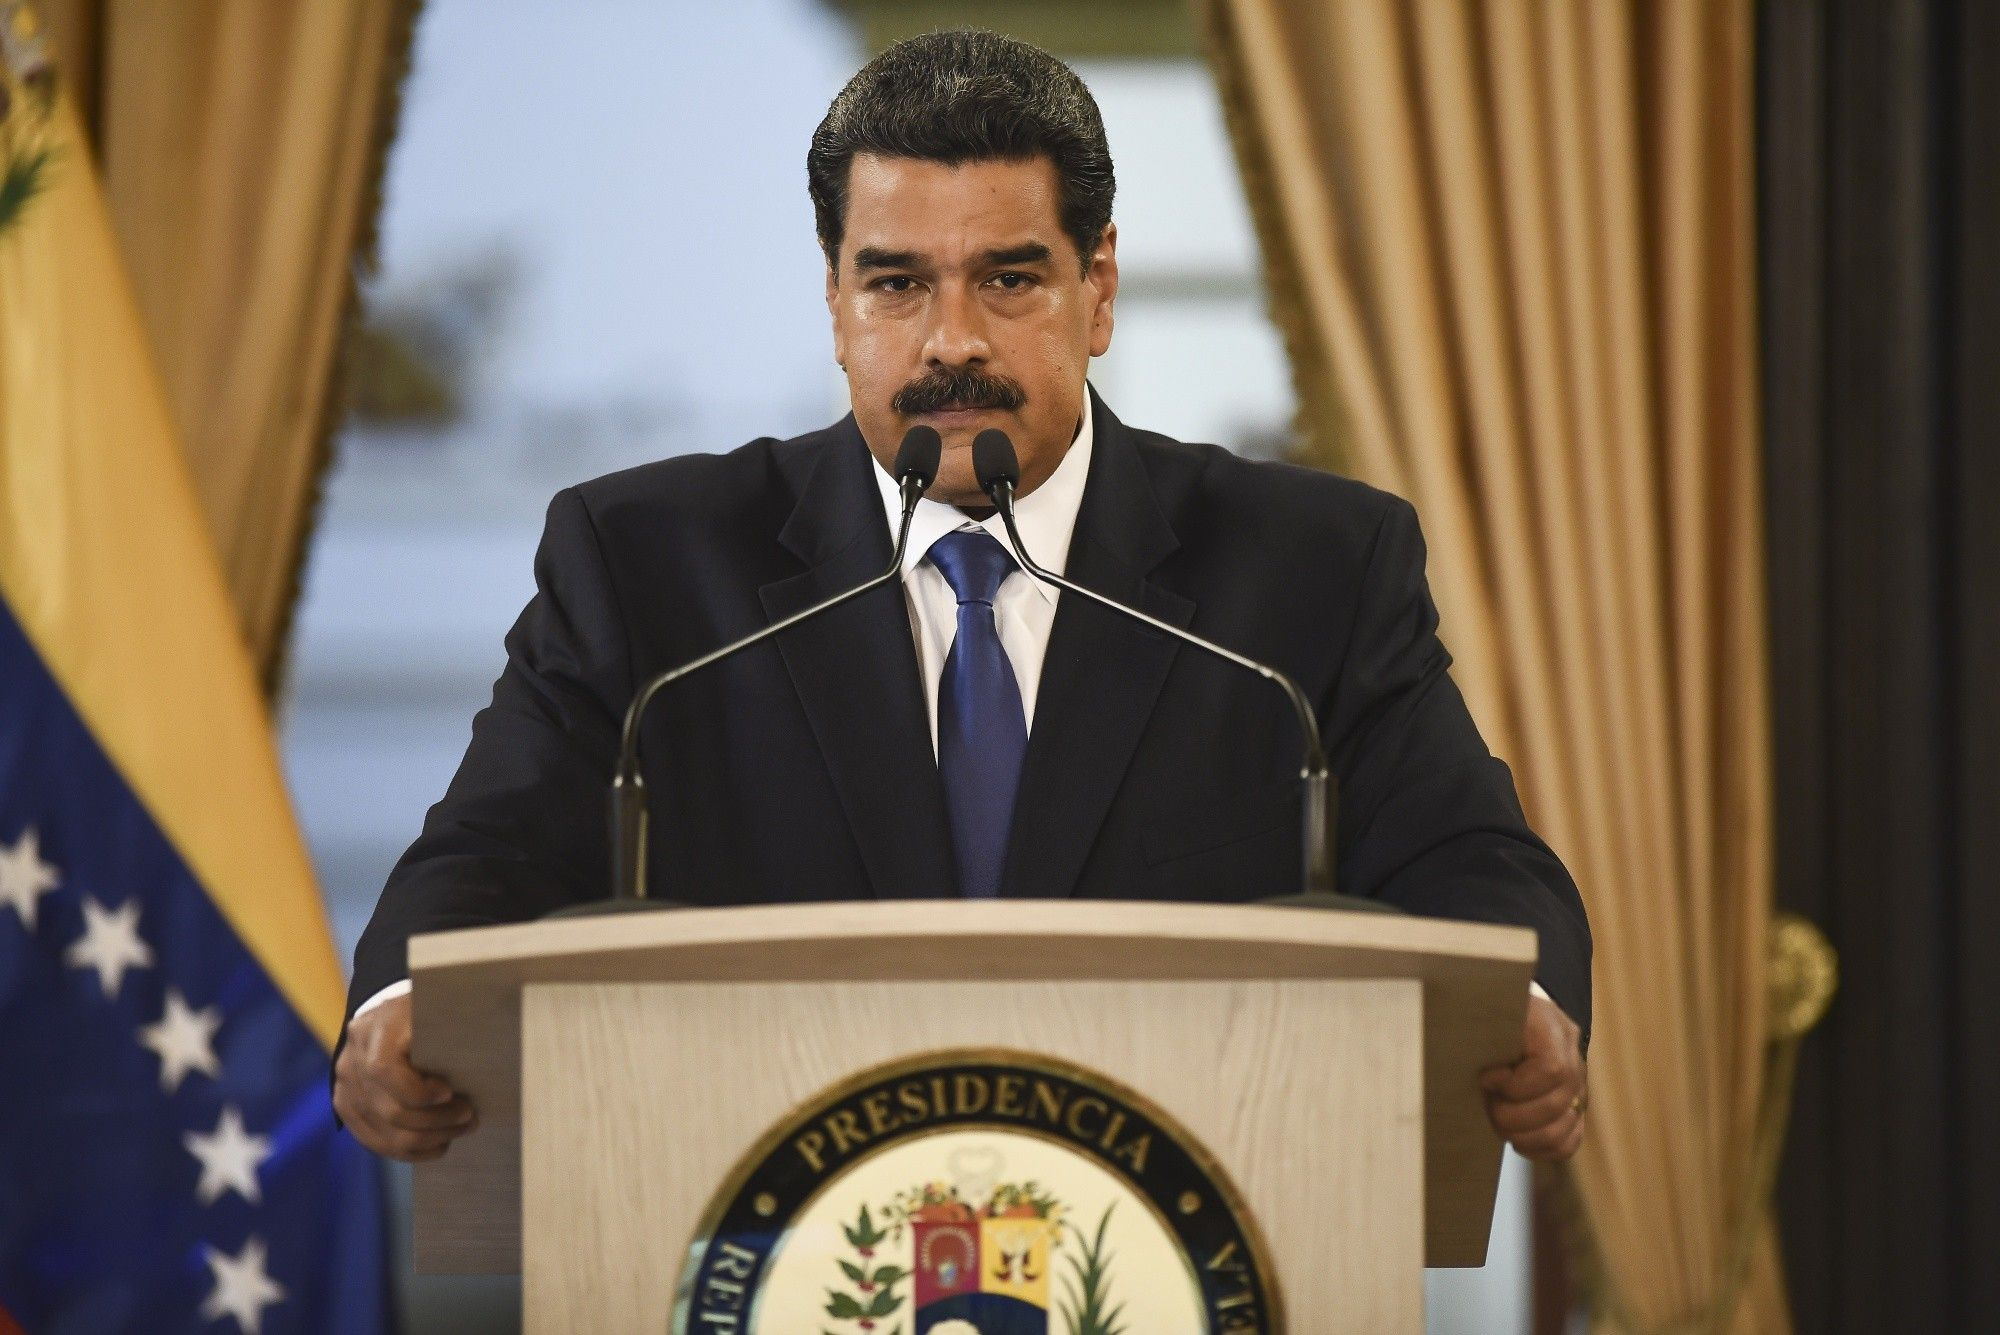 President Nicolas Maduro Holds Press Conference As Bridge Blockade Stifles Humanitarian Aid